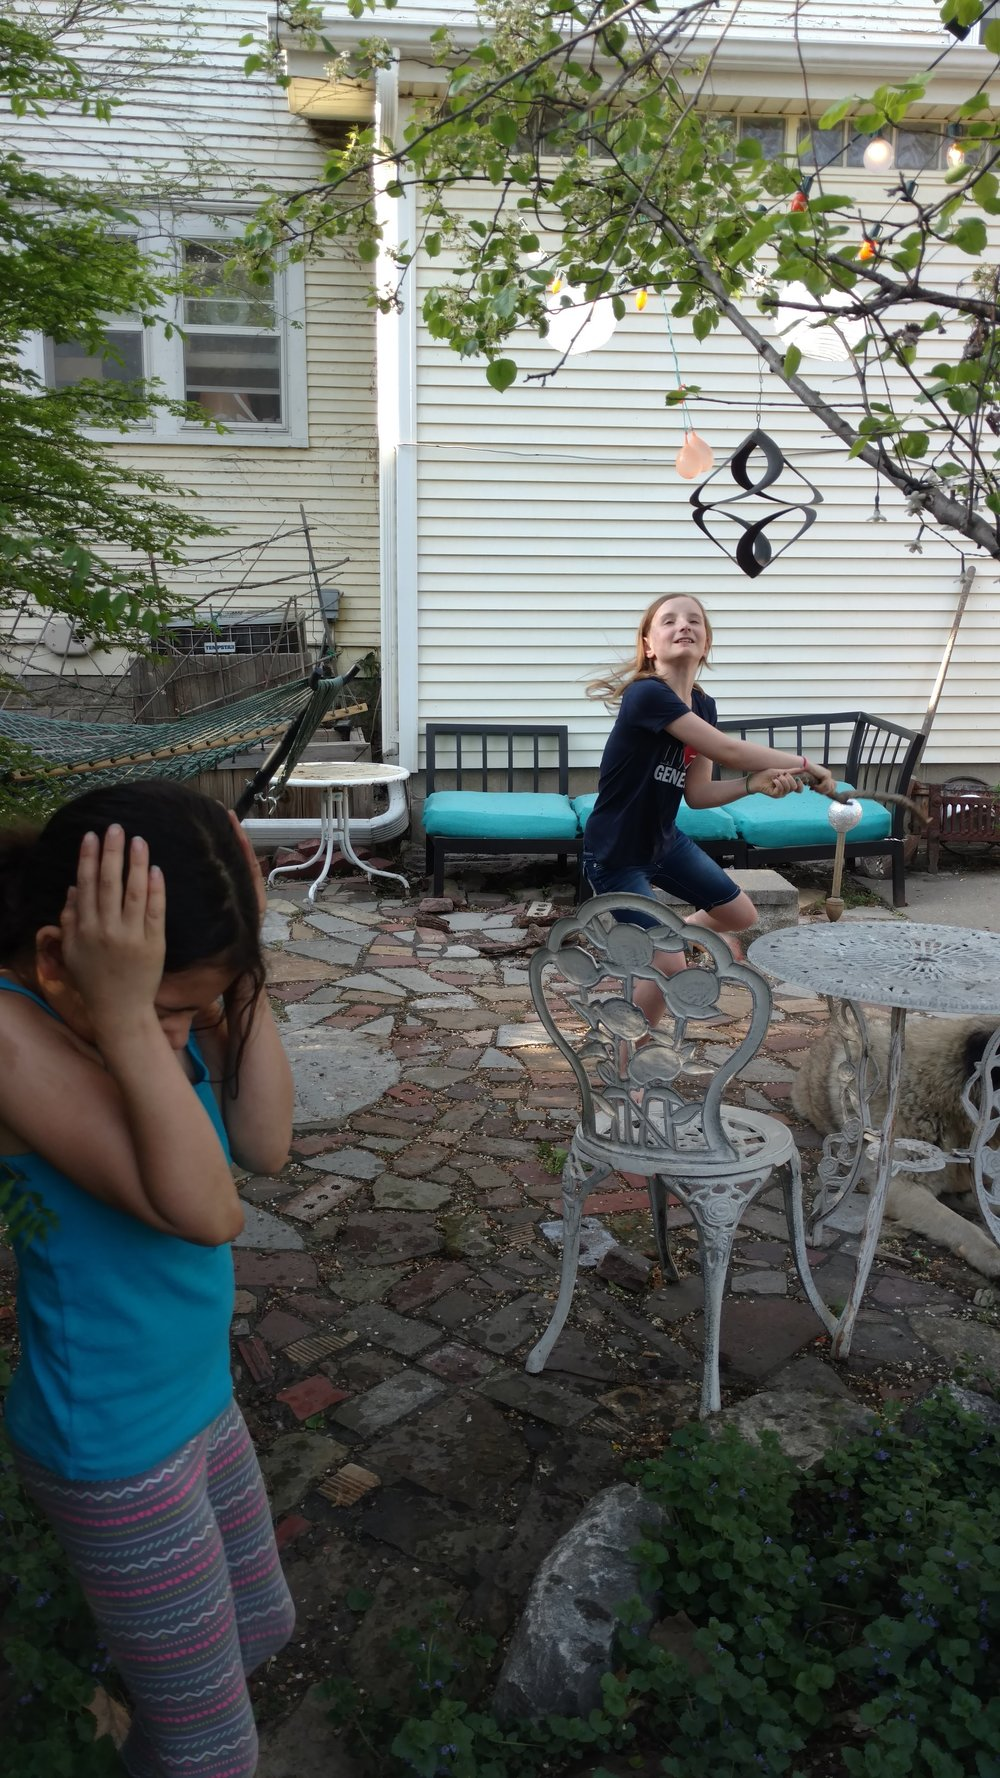 Olivia takes another swing at the water balloon pinata while Ruby ducks.